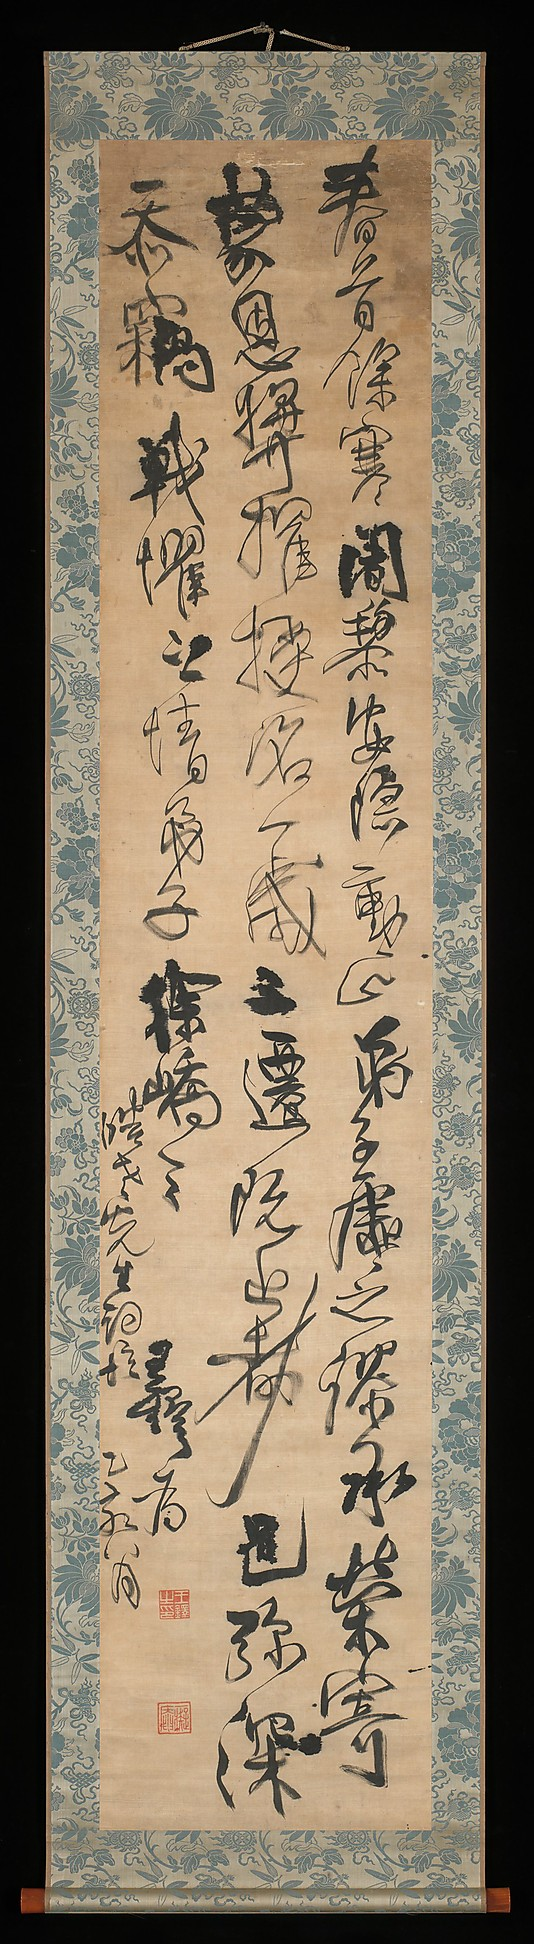 Calligraphy by  Wang Duo (Chinese, 1592–1652). Period: Ming dynasty (1368–1644). Date: 1635. Hanging scroll; ink on silk cloth.  Dimensions: Image: 8 ft. 10 in. × 20 1/16 in. (269.2 × 51 cm)